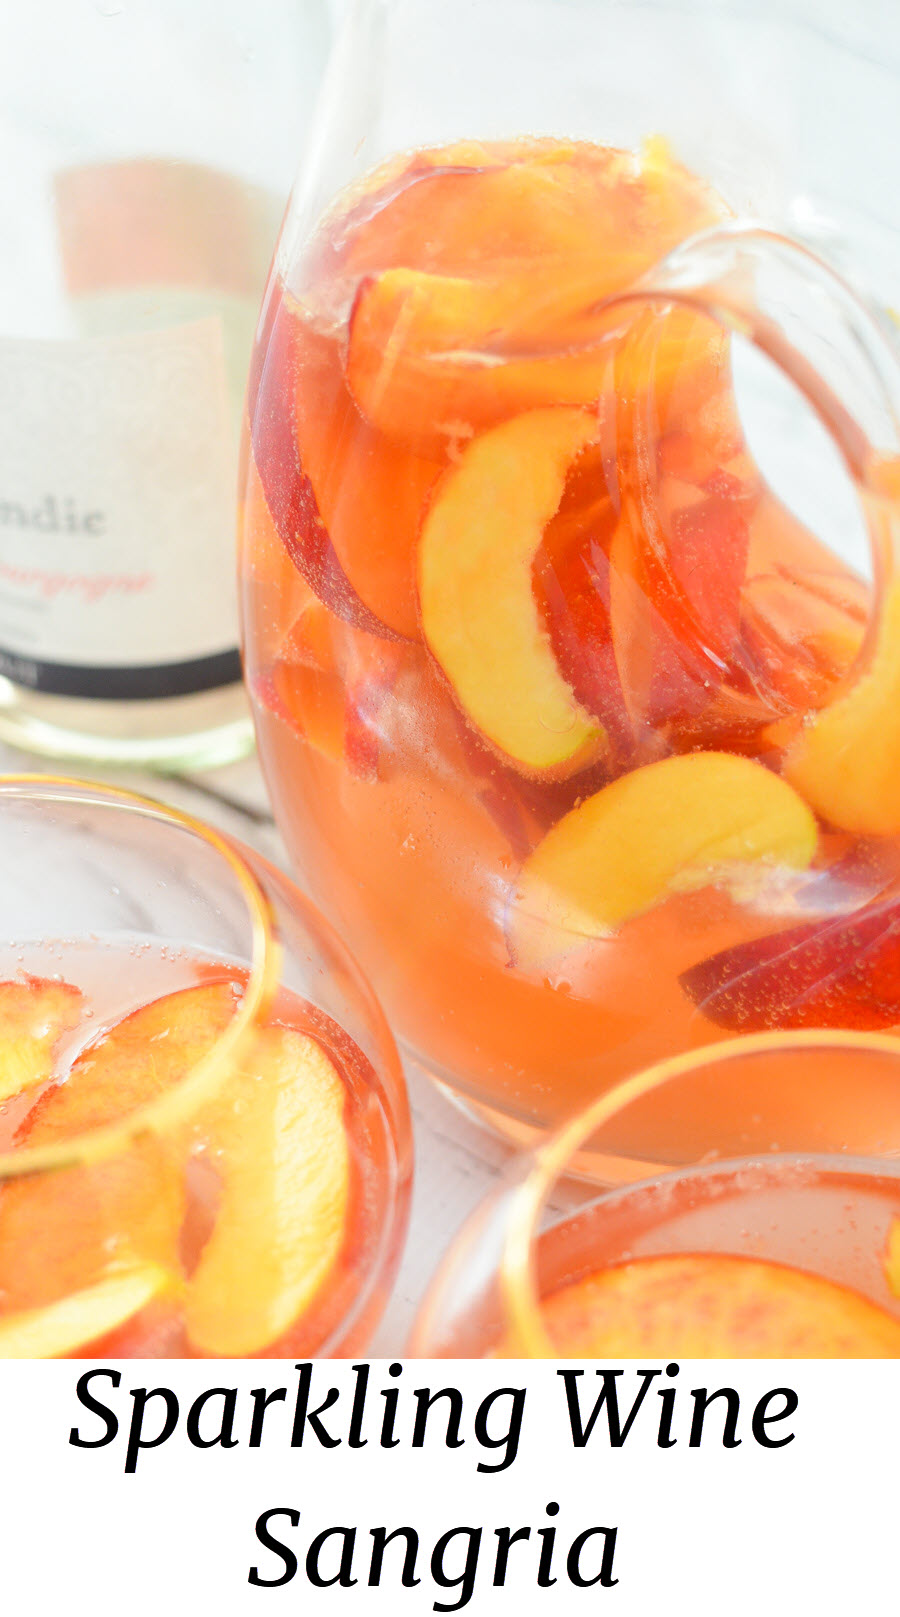 Sparkling Wine Sangria. Nectarine Sangria w. Ginger + Orange Liqueur. A fresh fruit summer sangria. This nectarine cocktail made with sparkling rose wine is a great summer drink. #lmrecipes #sangria #cocktail #cocktails #drinkrecipe #summer #nectarines #summerrecipes #foodblog #foodblogger